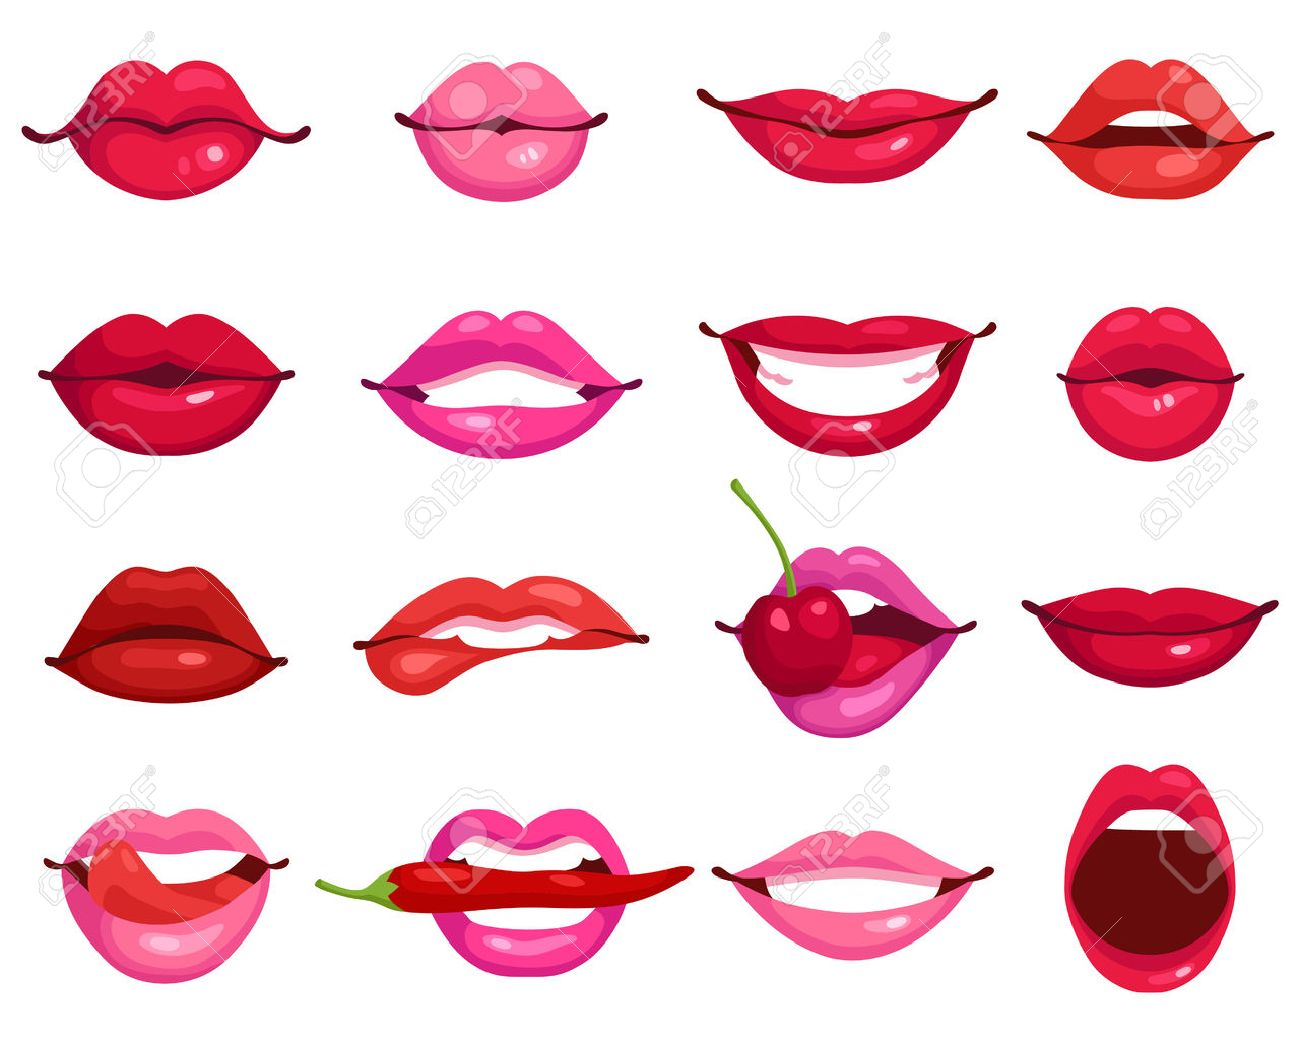 Red and rose kissing and smiling cartoon lips isolated decorative icons for party presentation vector illustration Stock Vector - 53878879